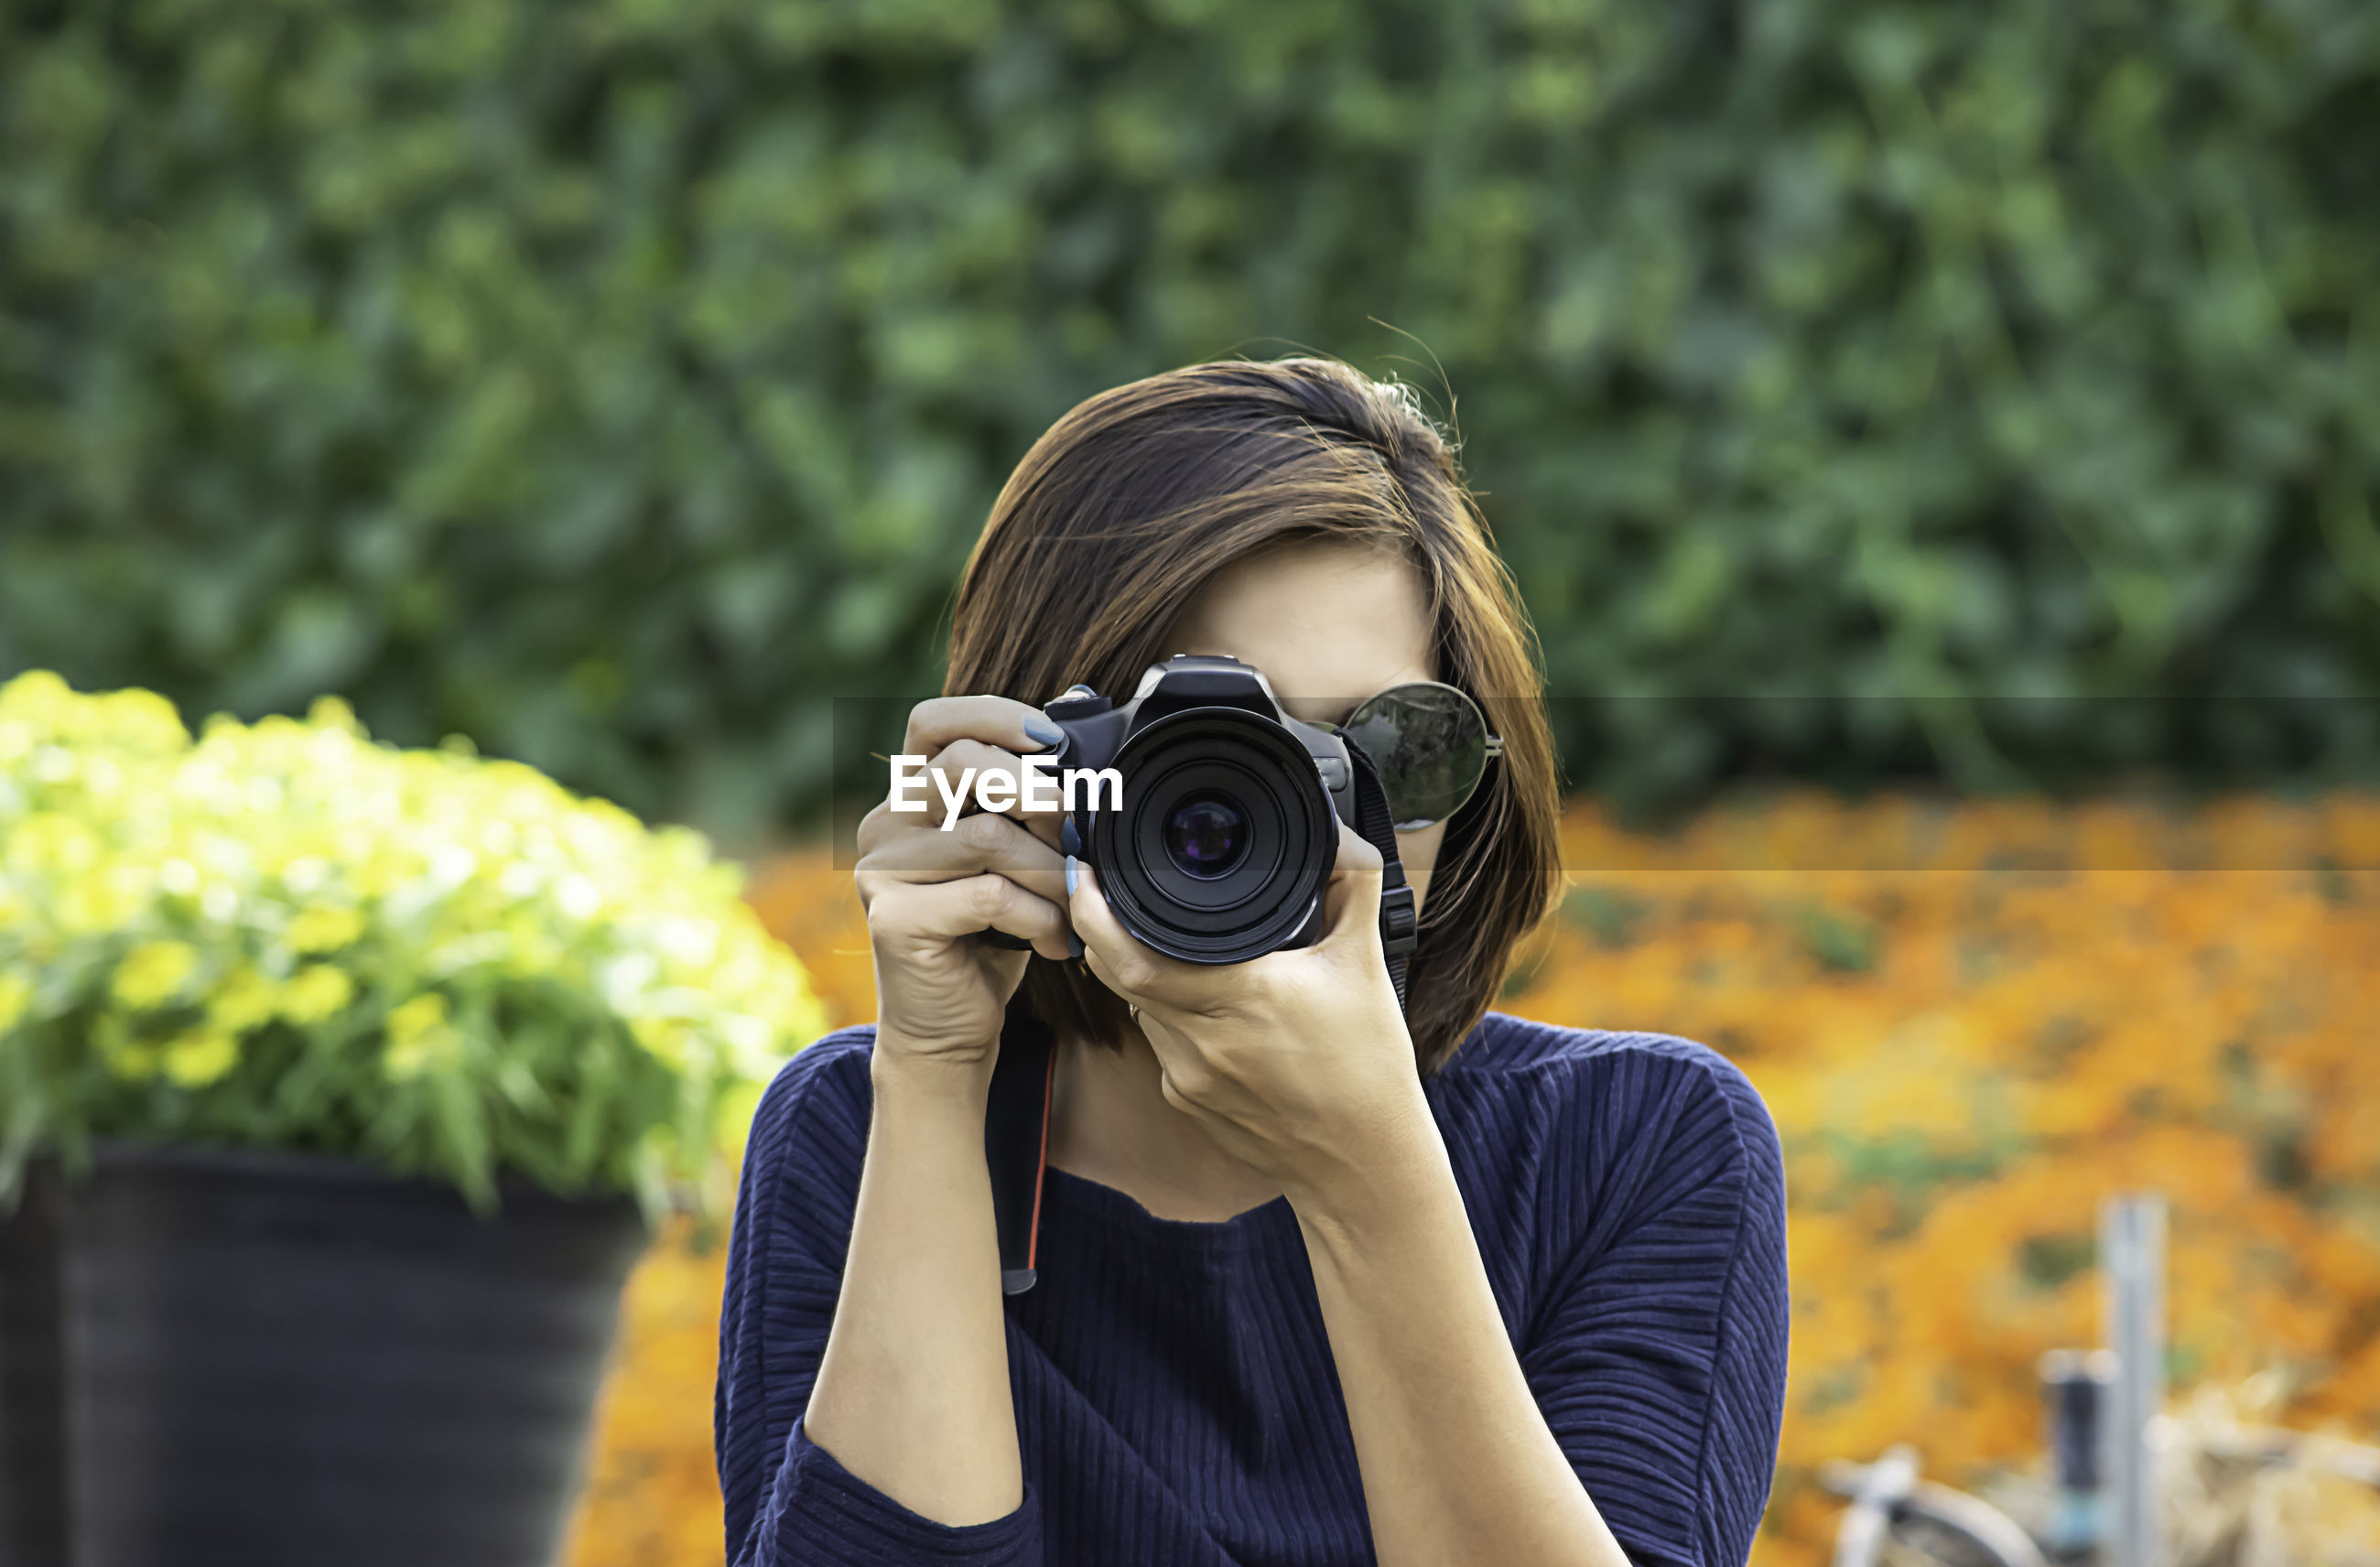 Woman photographing with camera in garden